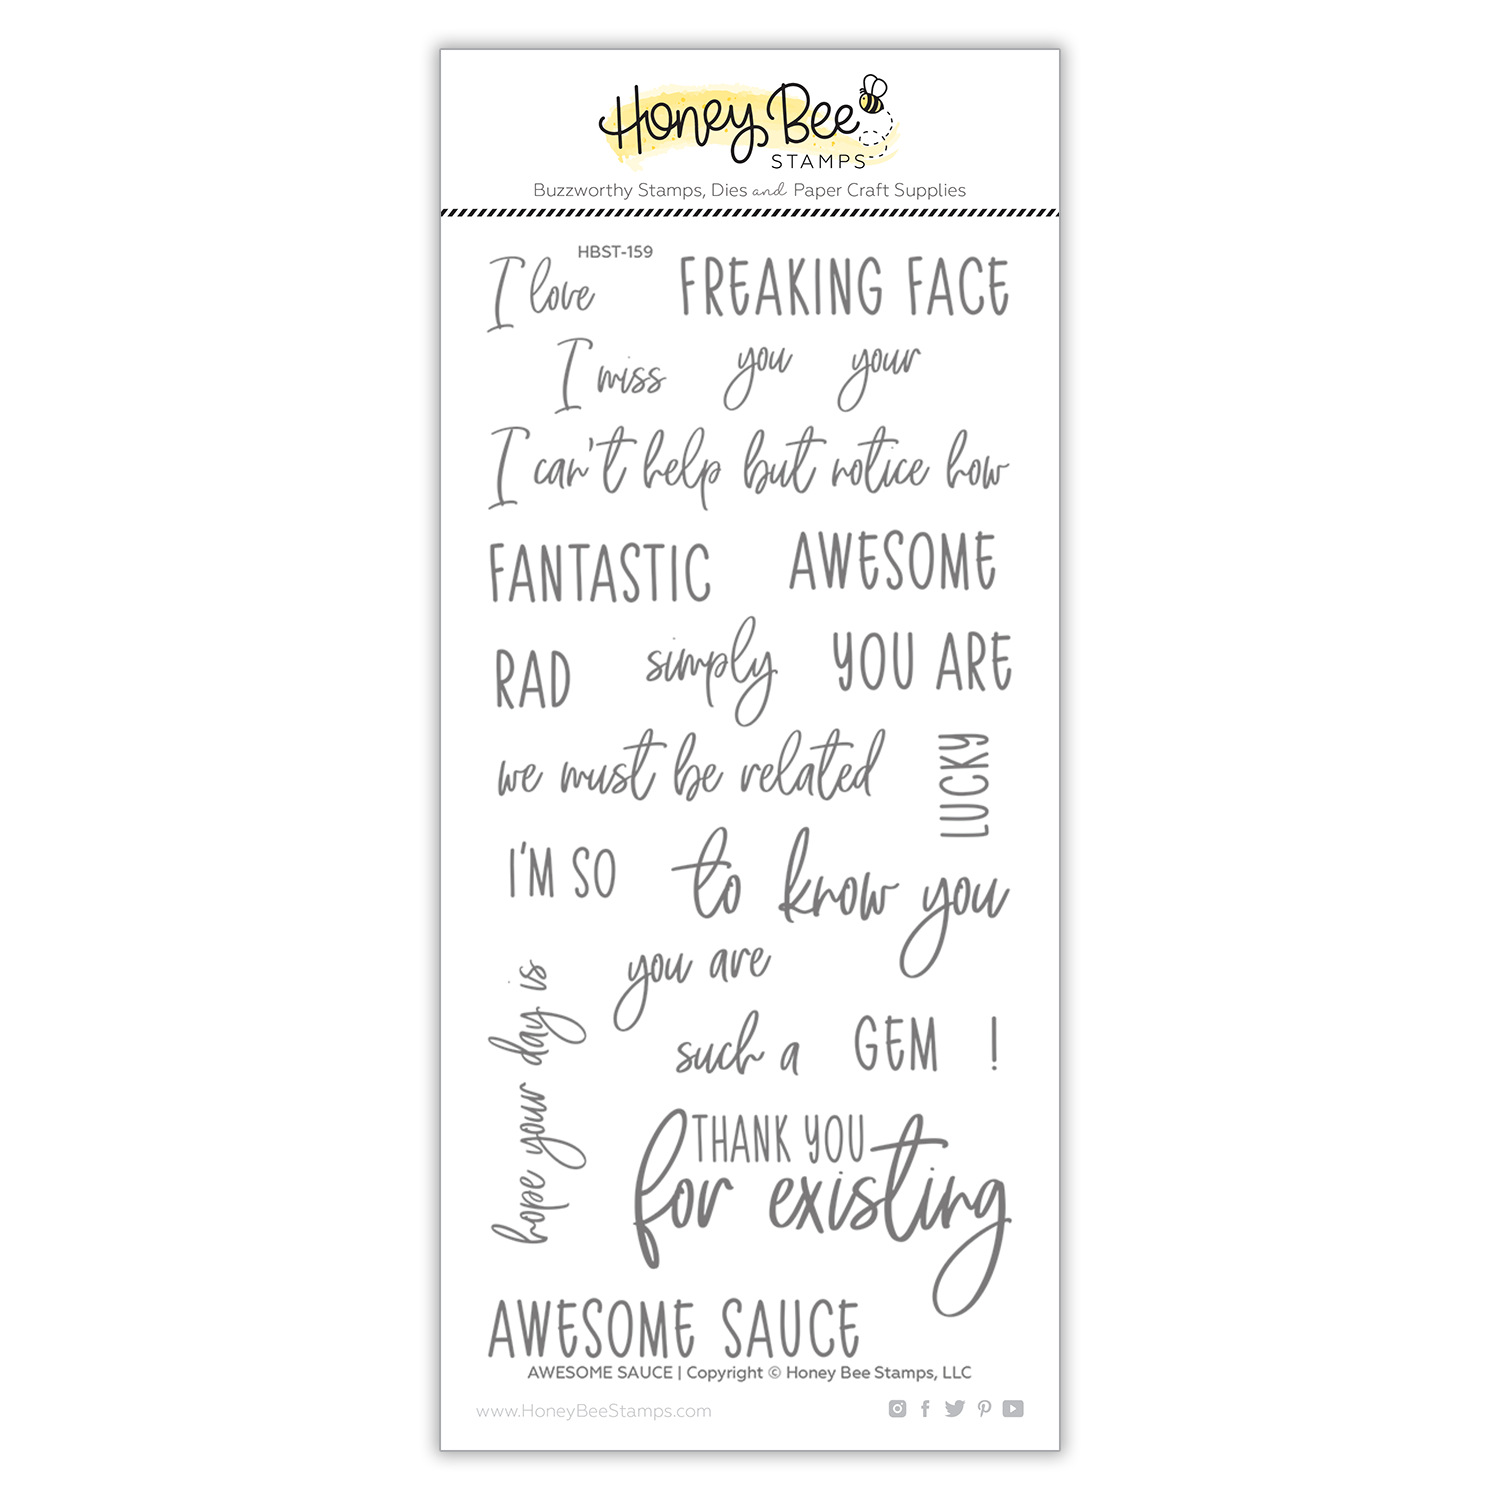 *NEW* - Honey Bee - Awesome Sauce | 4x8 Stamp Set